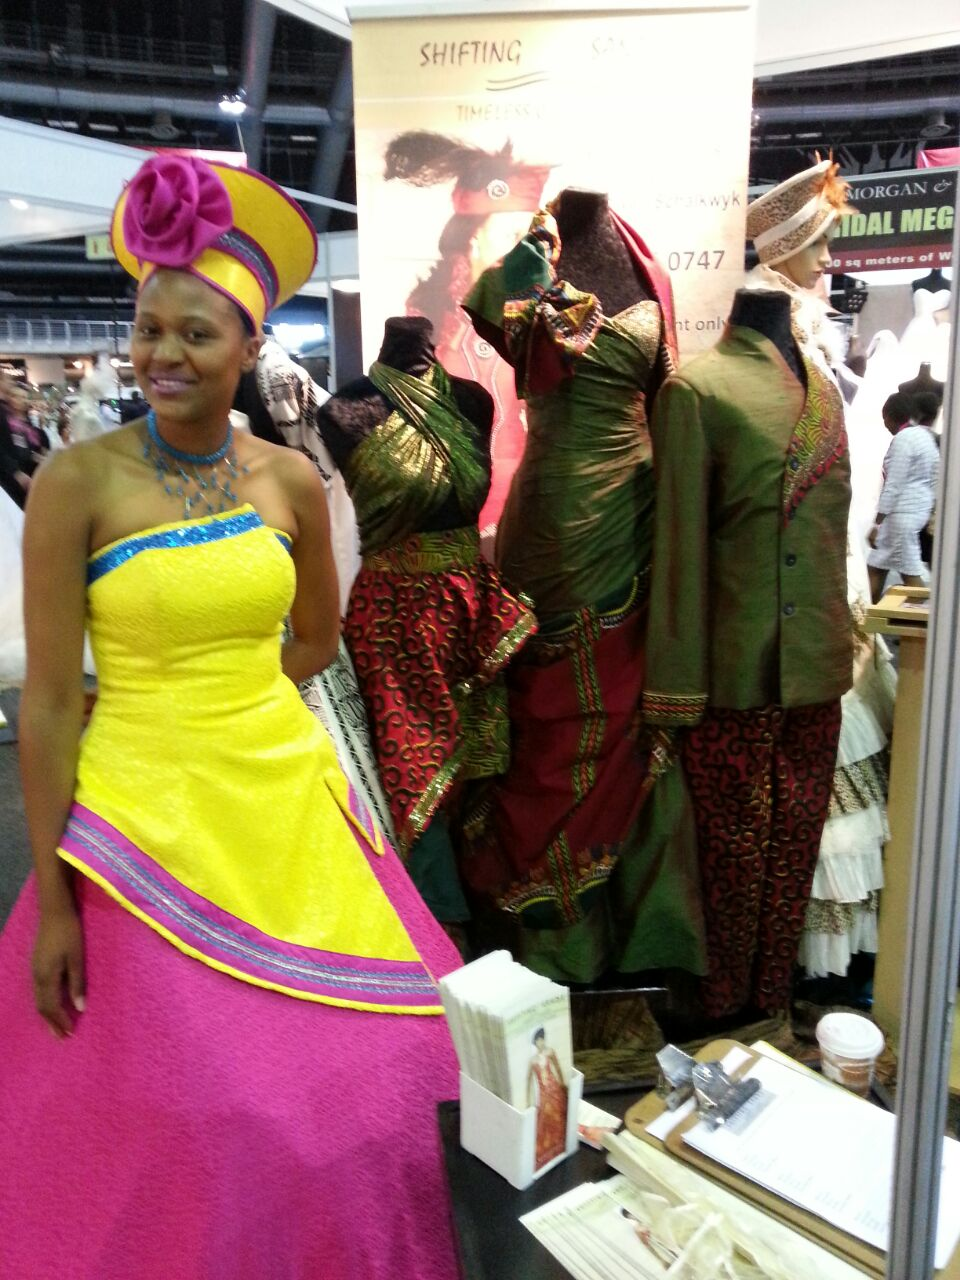 venda traditional dress Find the perfect modern traditional wedding dresses online on sunika ethnics we have sotho, tswana, sepedi, zulu, tsonga traditional african wedding dresses from various designers in south africa.